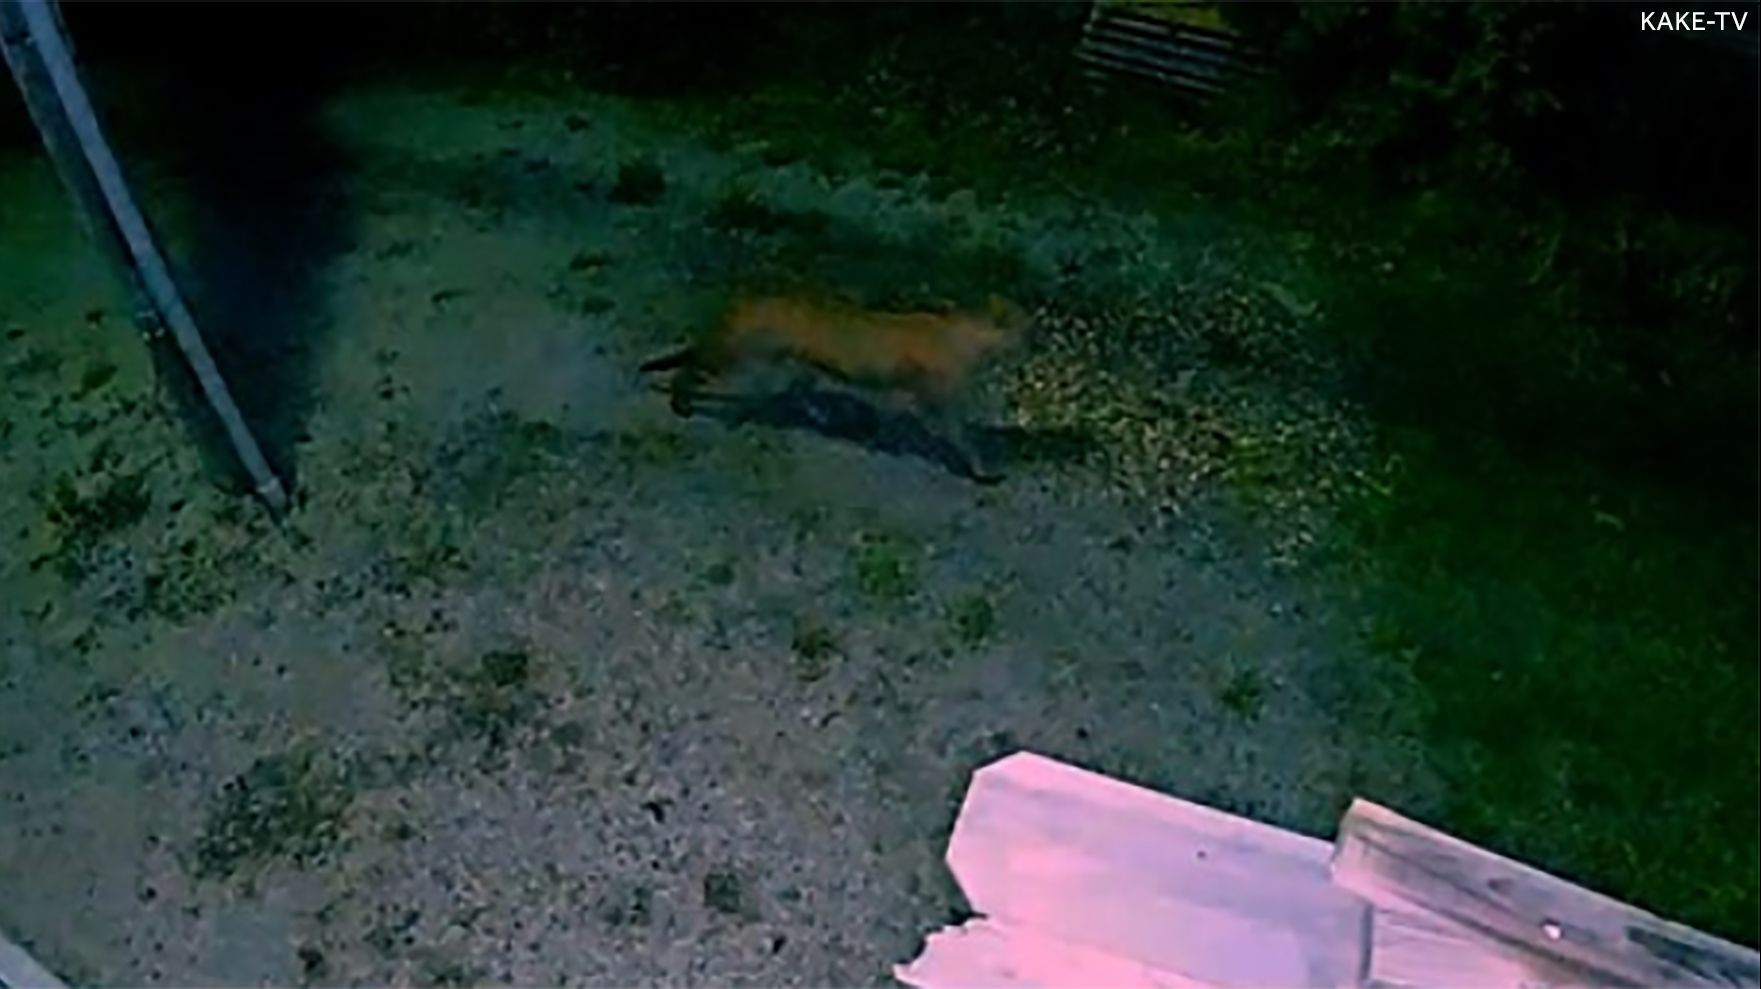 First confirmed mountain lion sighting in populated area of Kansas caught on camera